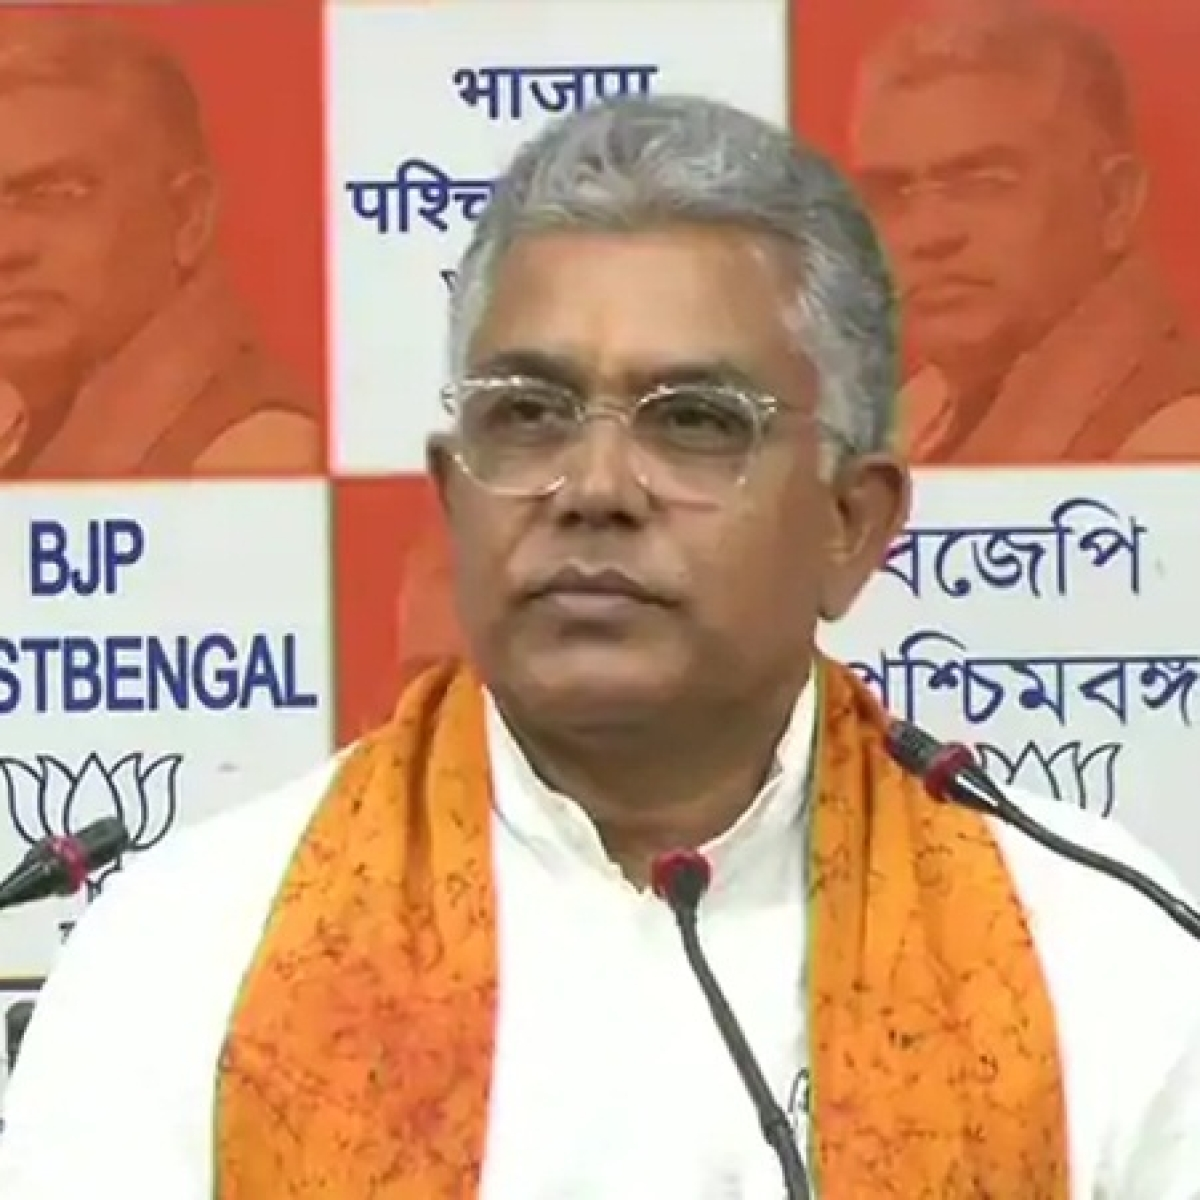 West Bengal BJP chief Dilip Ghosh turns away ambulance which tried to make way during rally